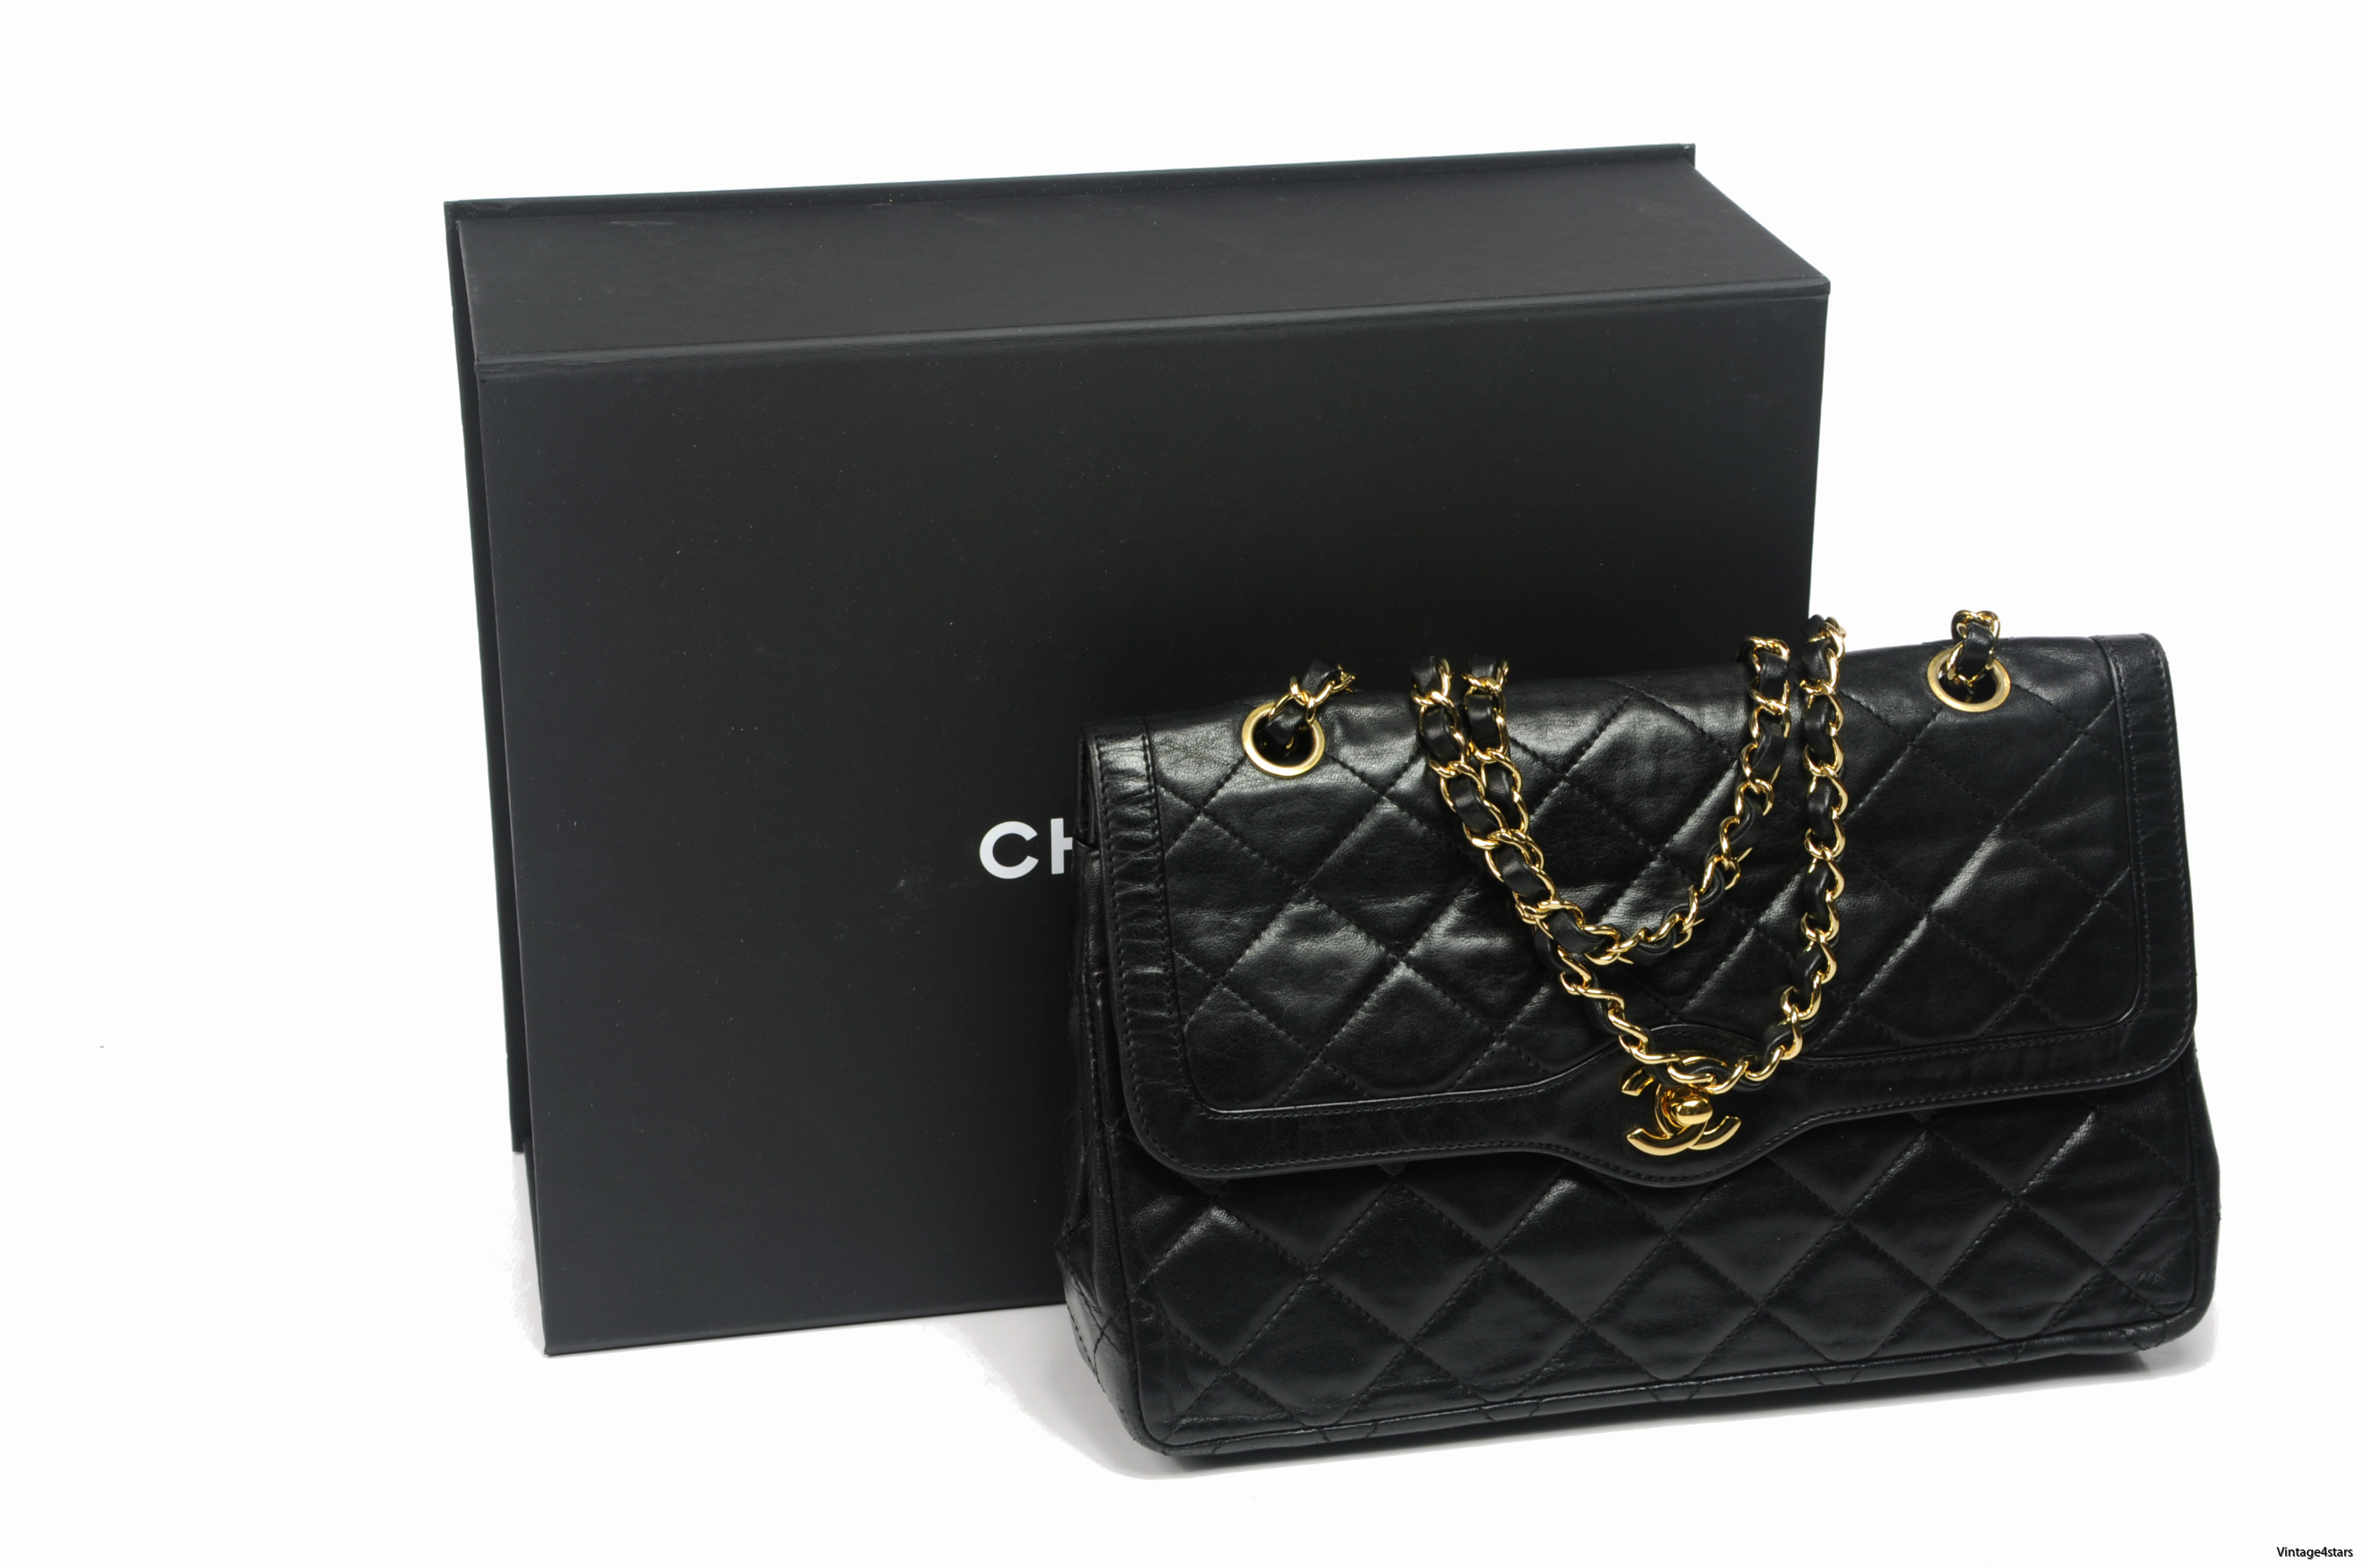 CHANEL Double Flap Paris 19